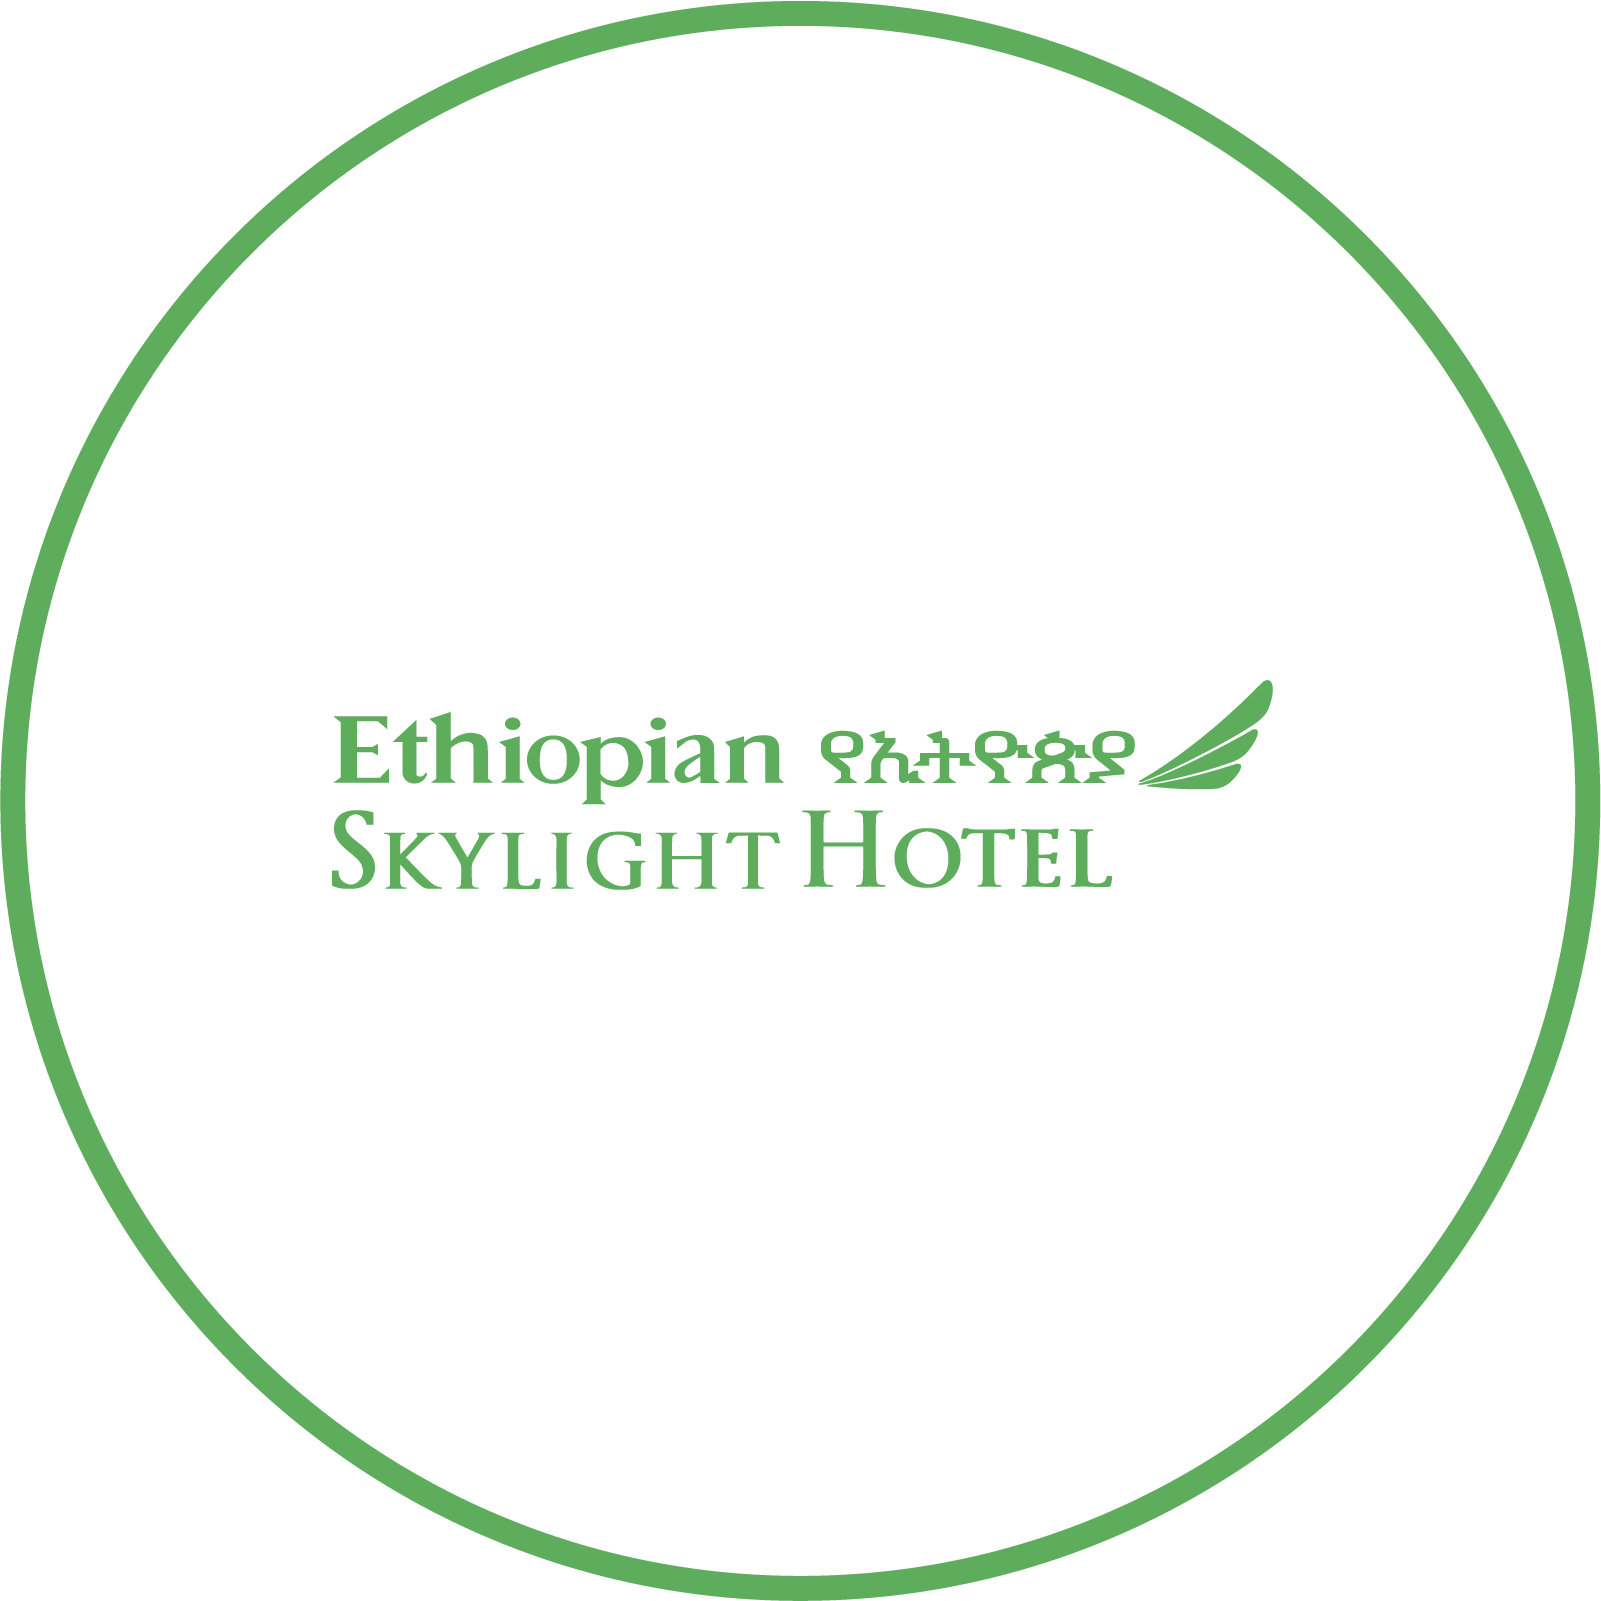 Ethiopian Skylight hotel packages